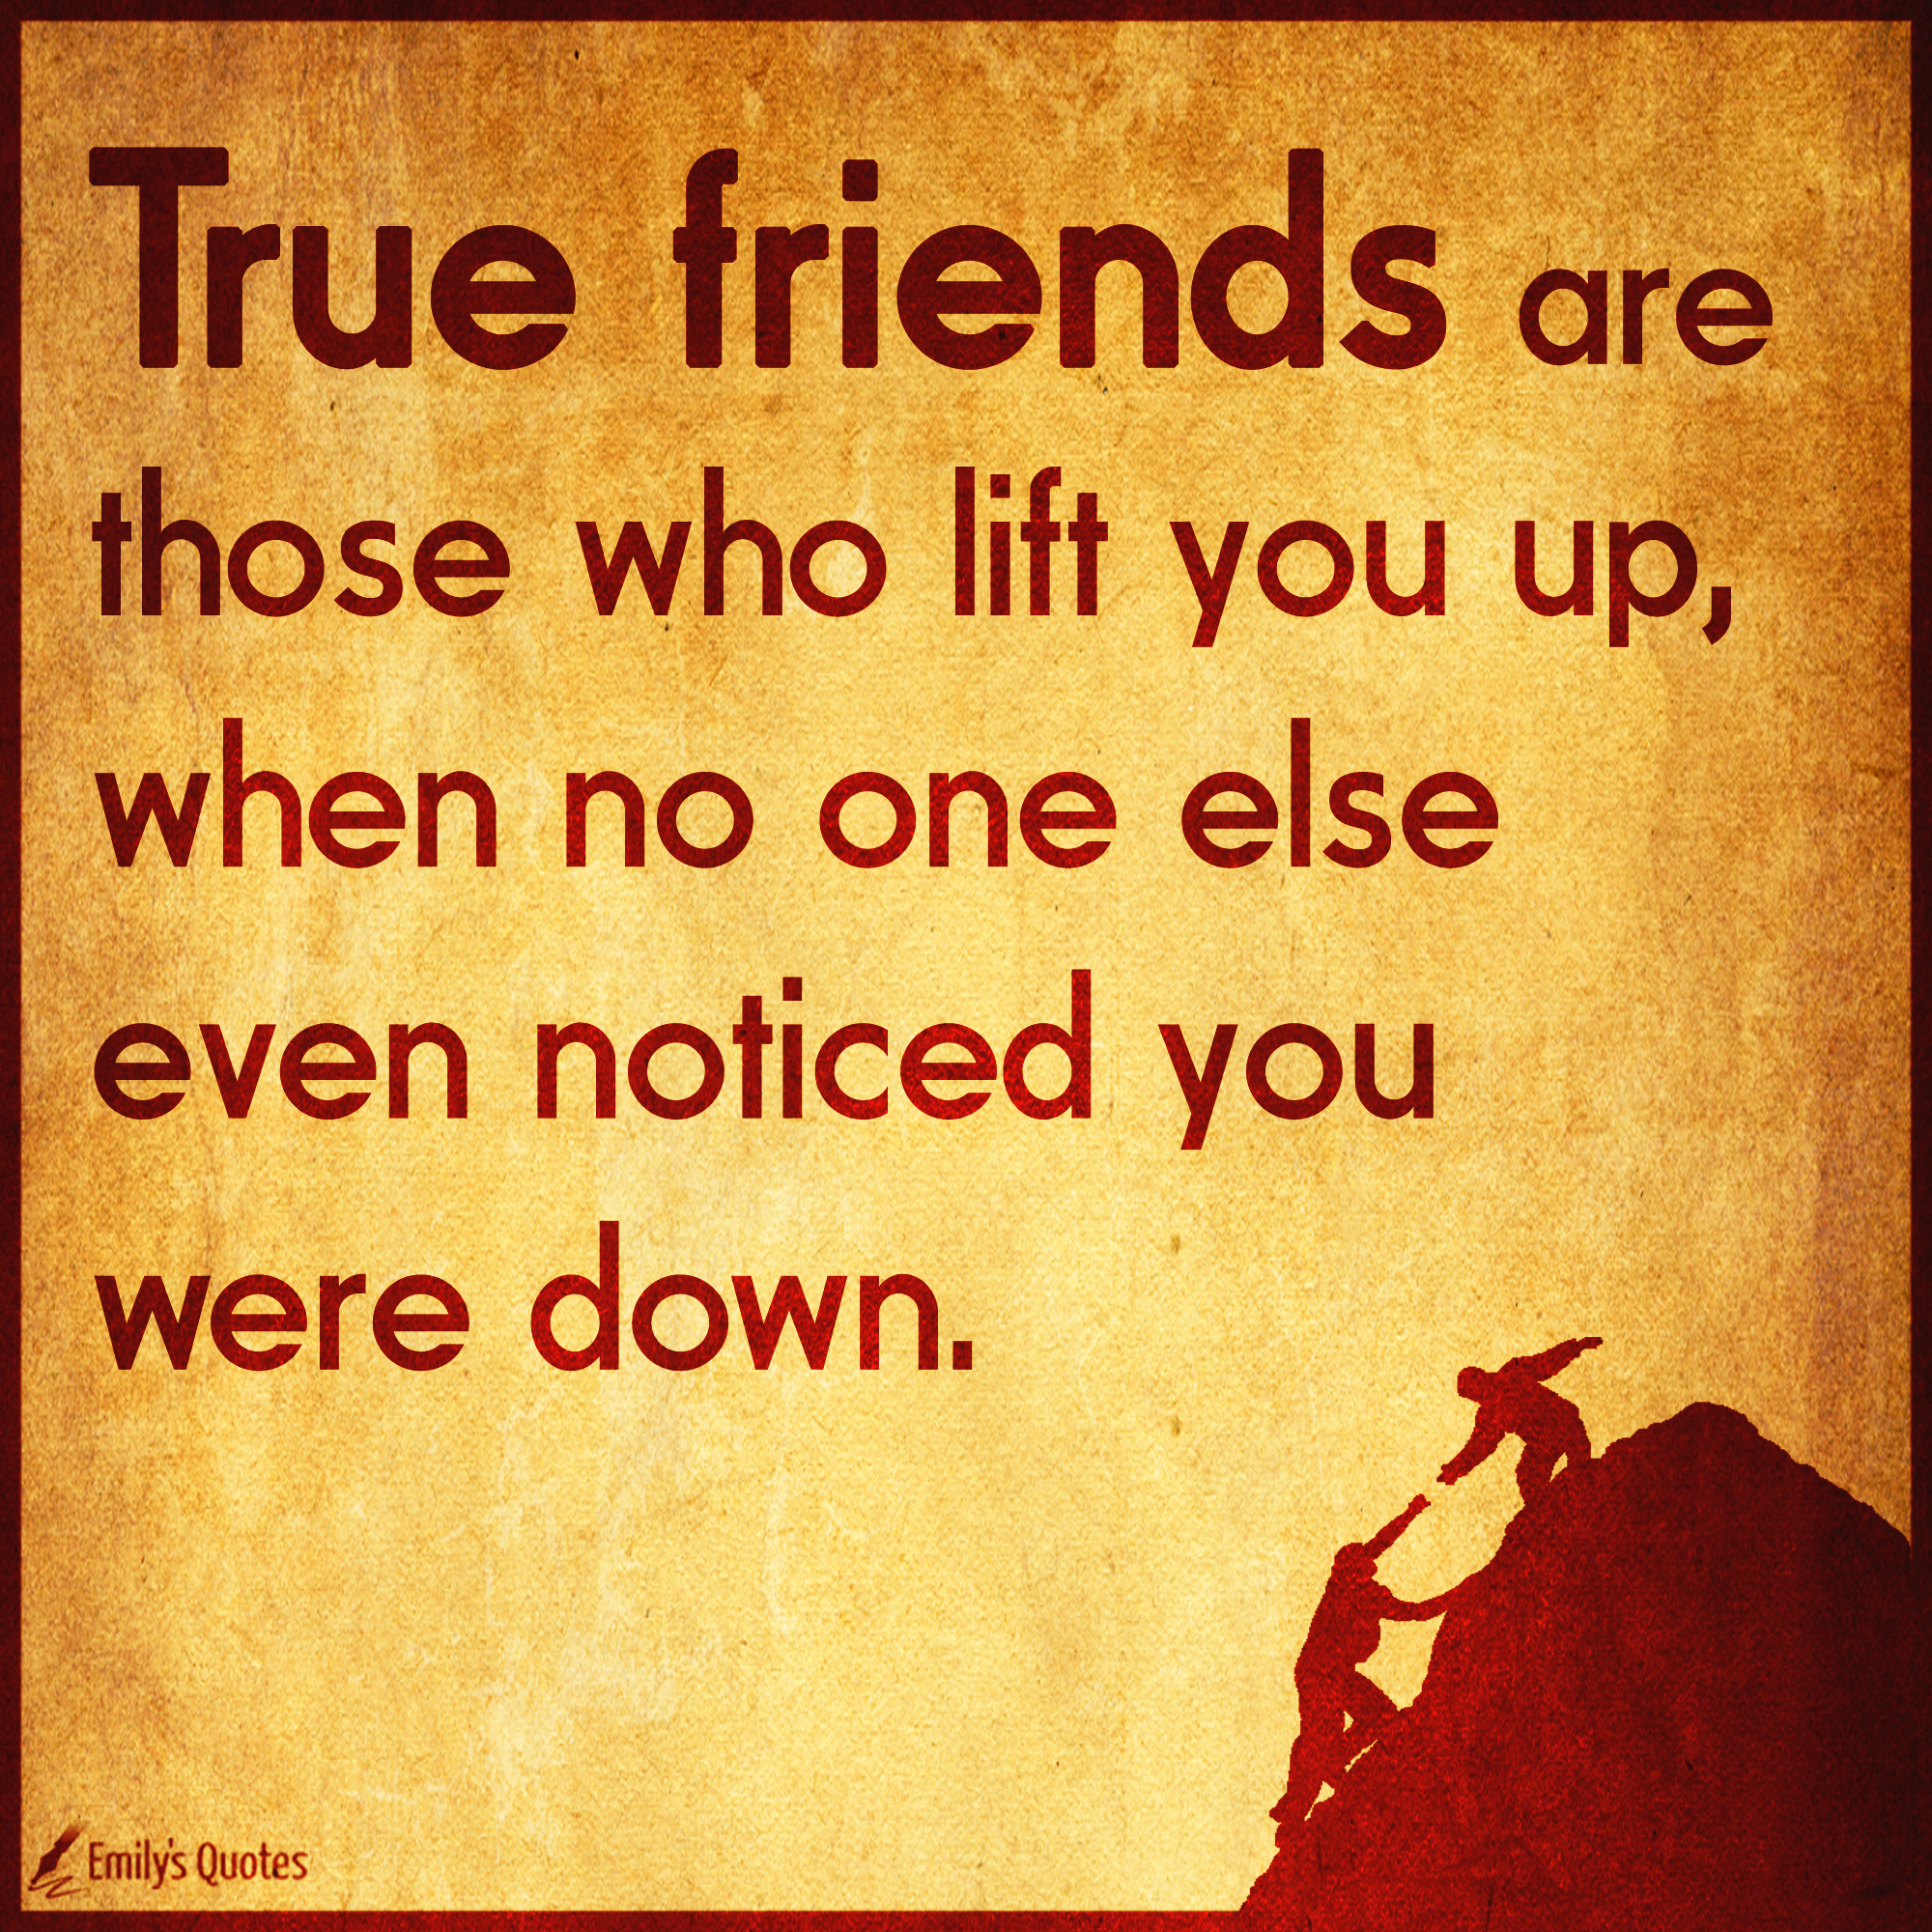 True Friends Are Those Who Lift You Up When No One Else Even Noticed You Were Down Popular Inspirational Quotes At Emilysquotes